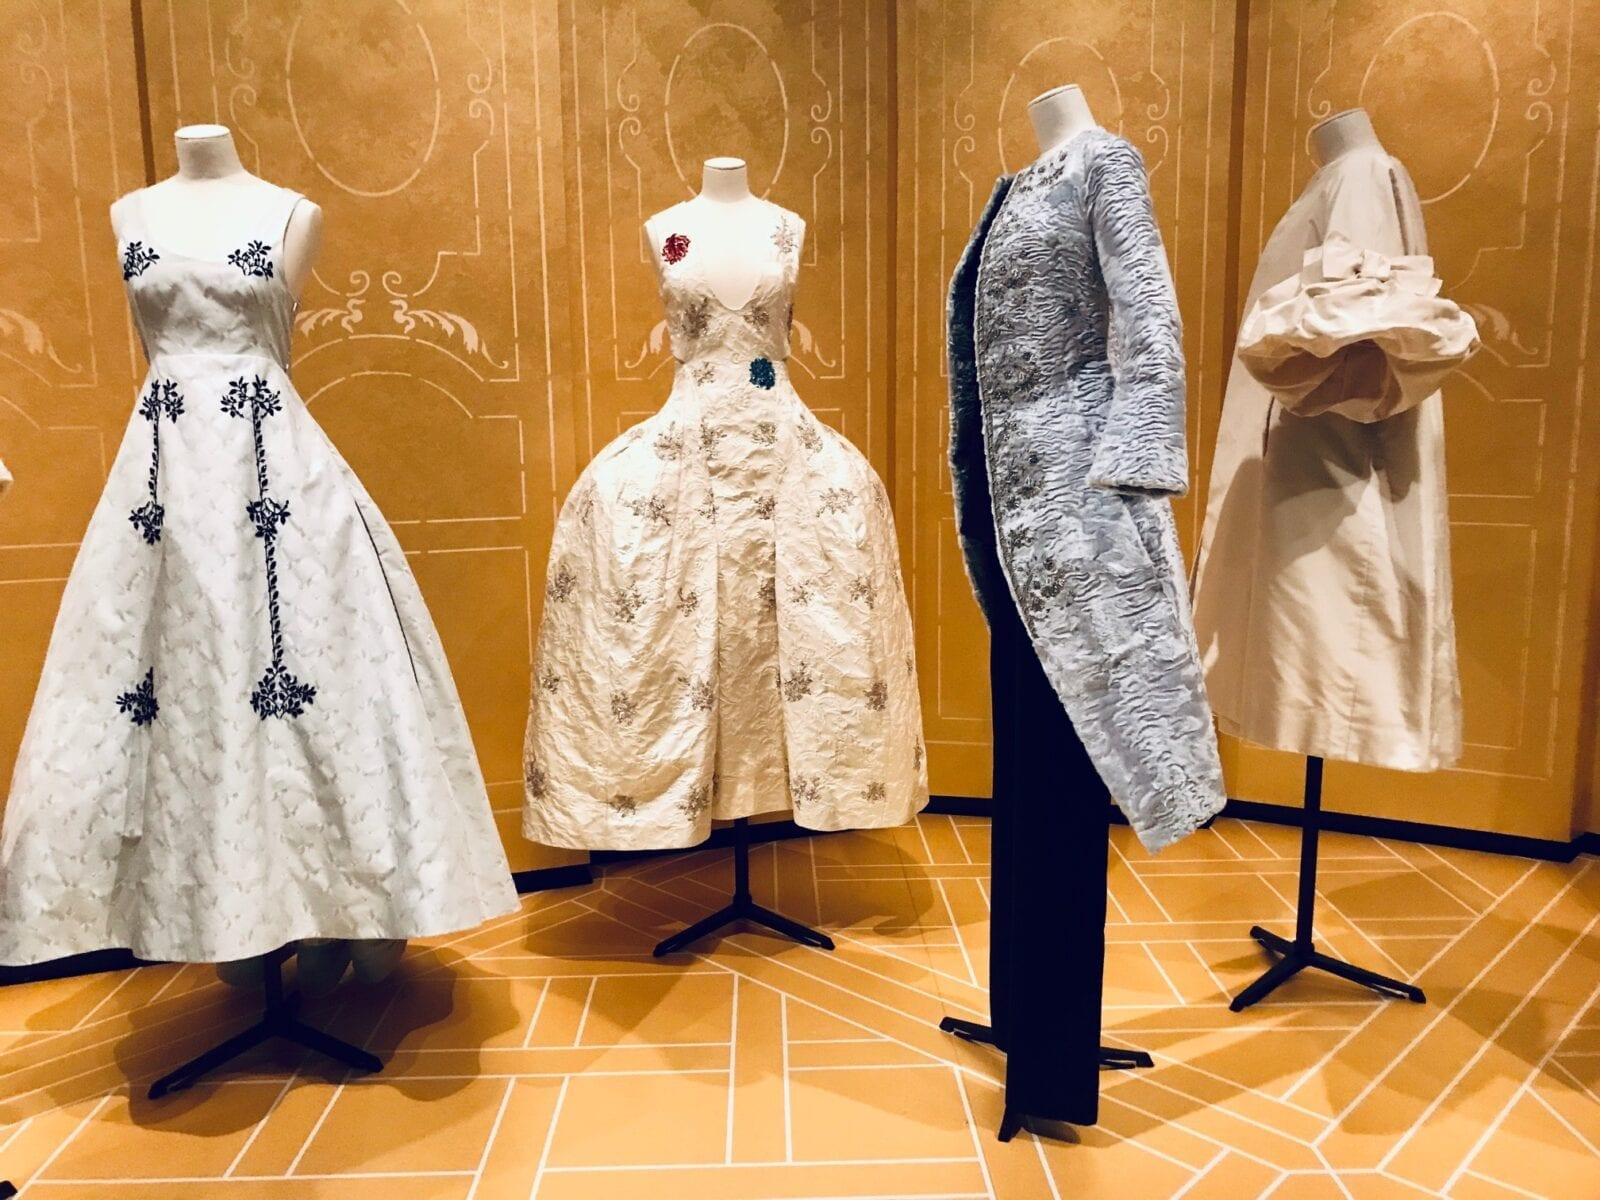 image of Christian Dior Exhibit at Denver Art Museum